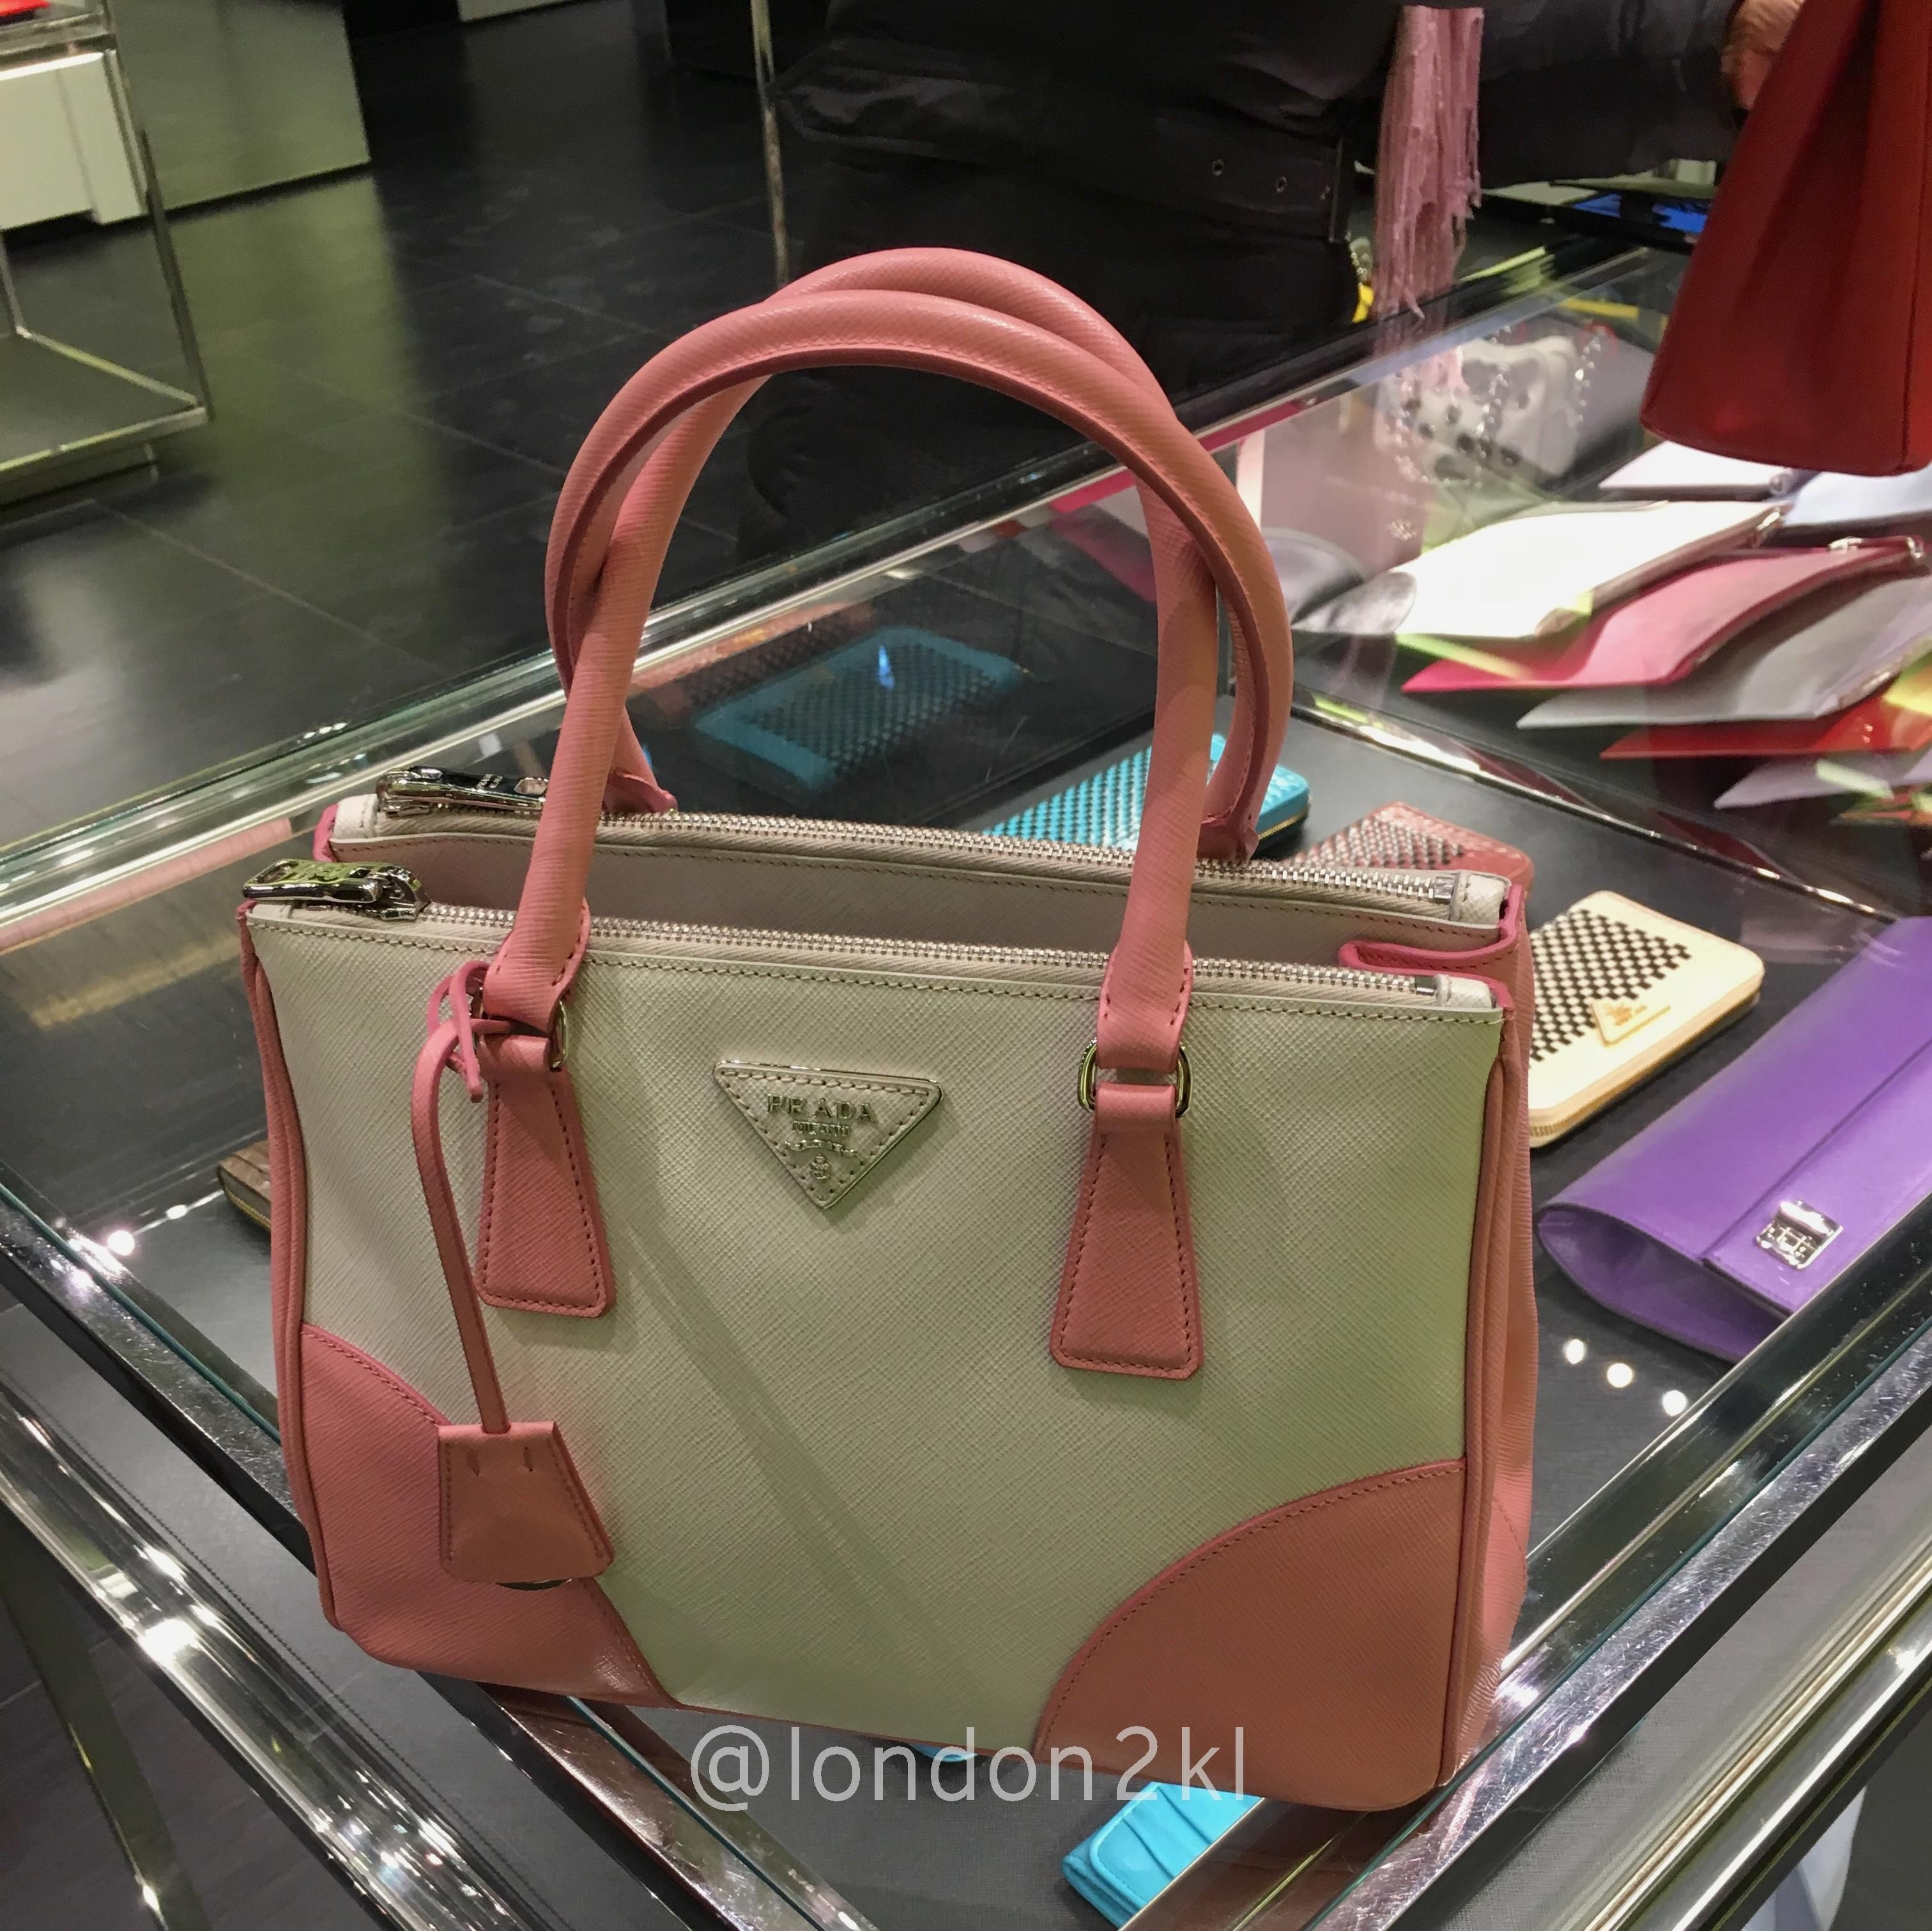 We are heading to Bicester Village on Tuesday (24/01/17). Prada B2863K RM4,470 ❤❤❤it?  WhatsApp me  for orders now.  Once it's gone, it's gone!  See even more #L2KLbv #L2KLbv #L2KLbv